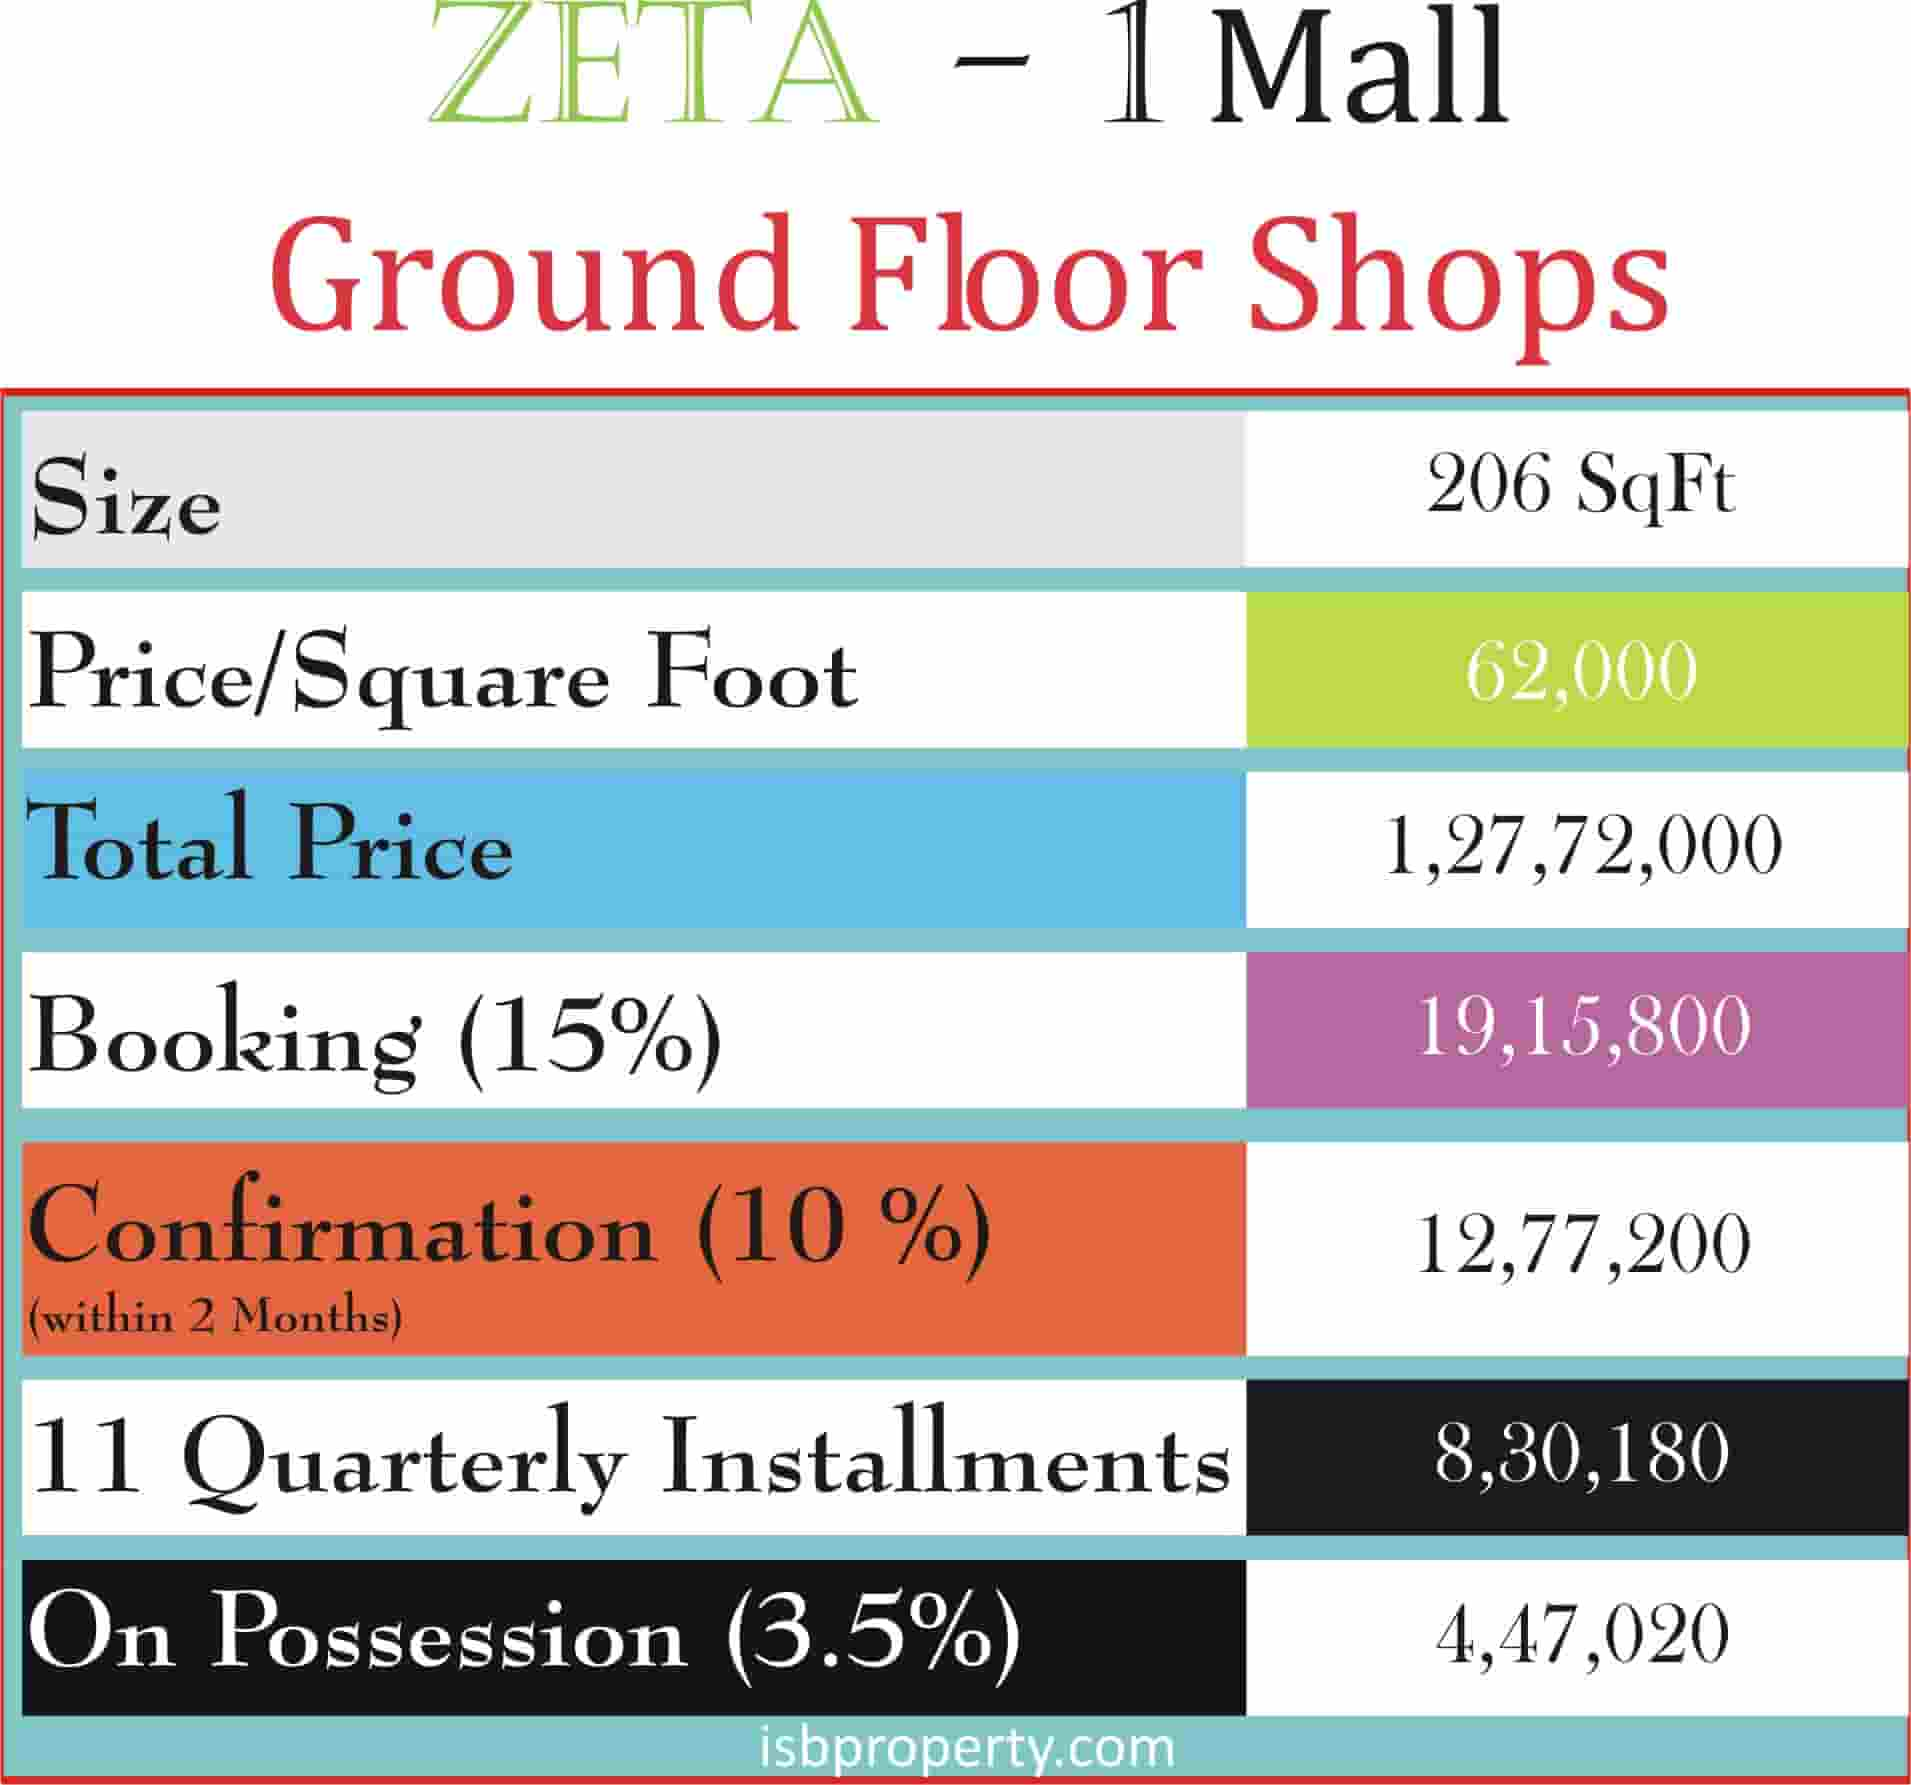 Zeta-1 Mall Ground Floor Payment Plan